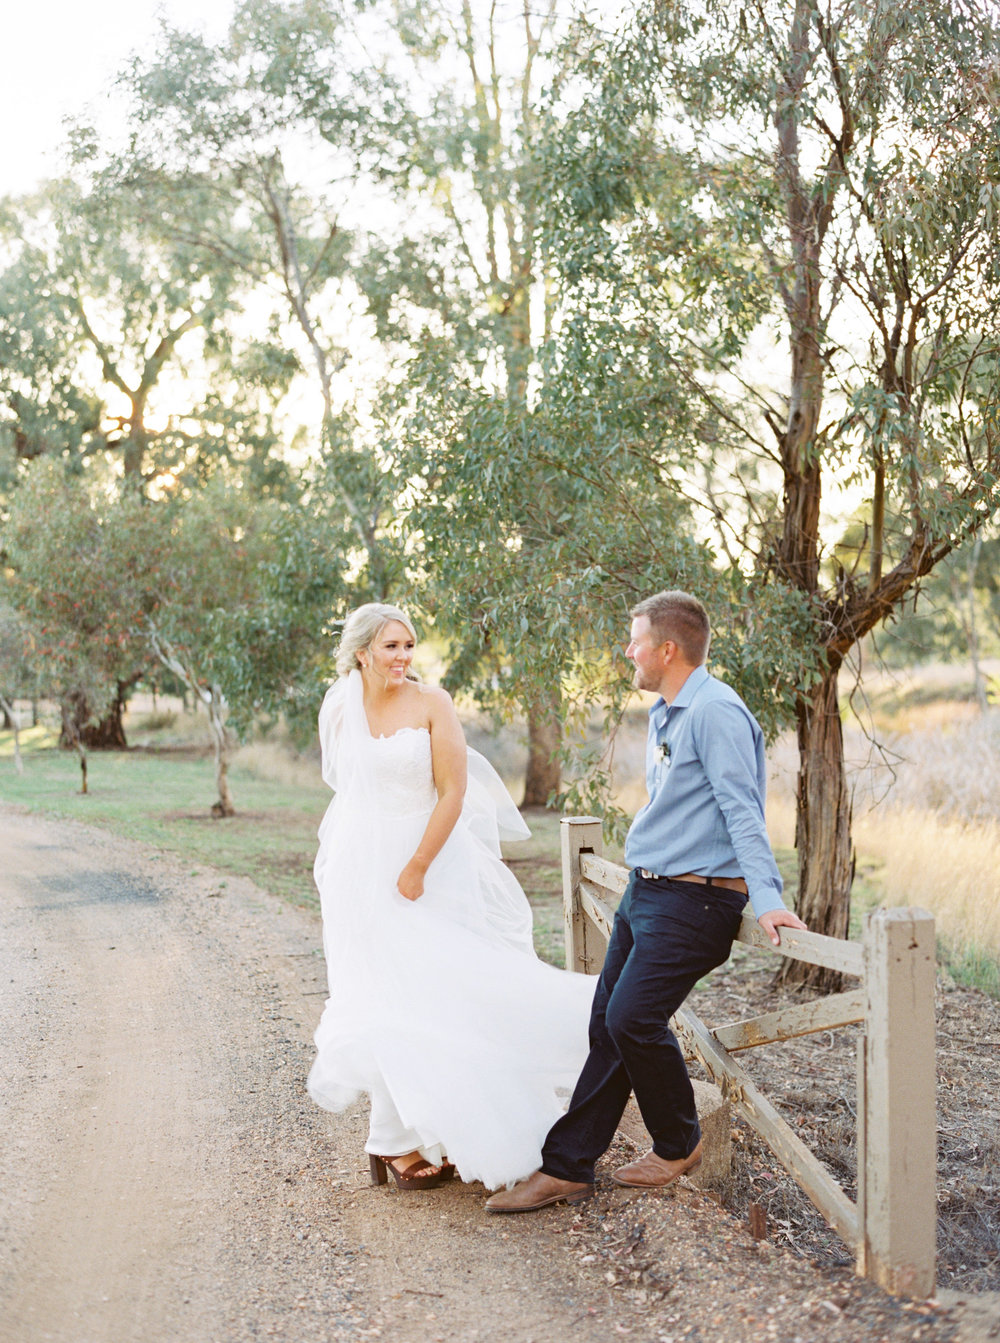 00036- Fine Art Film Dubbo NSW Wedding Photographer Sheri McMahon.jpg